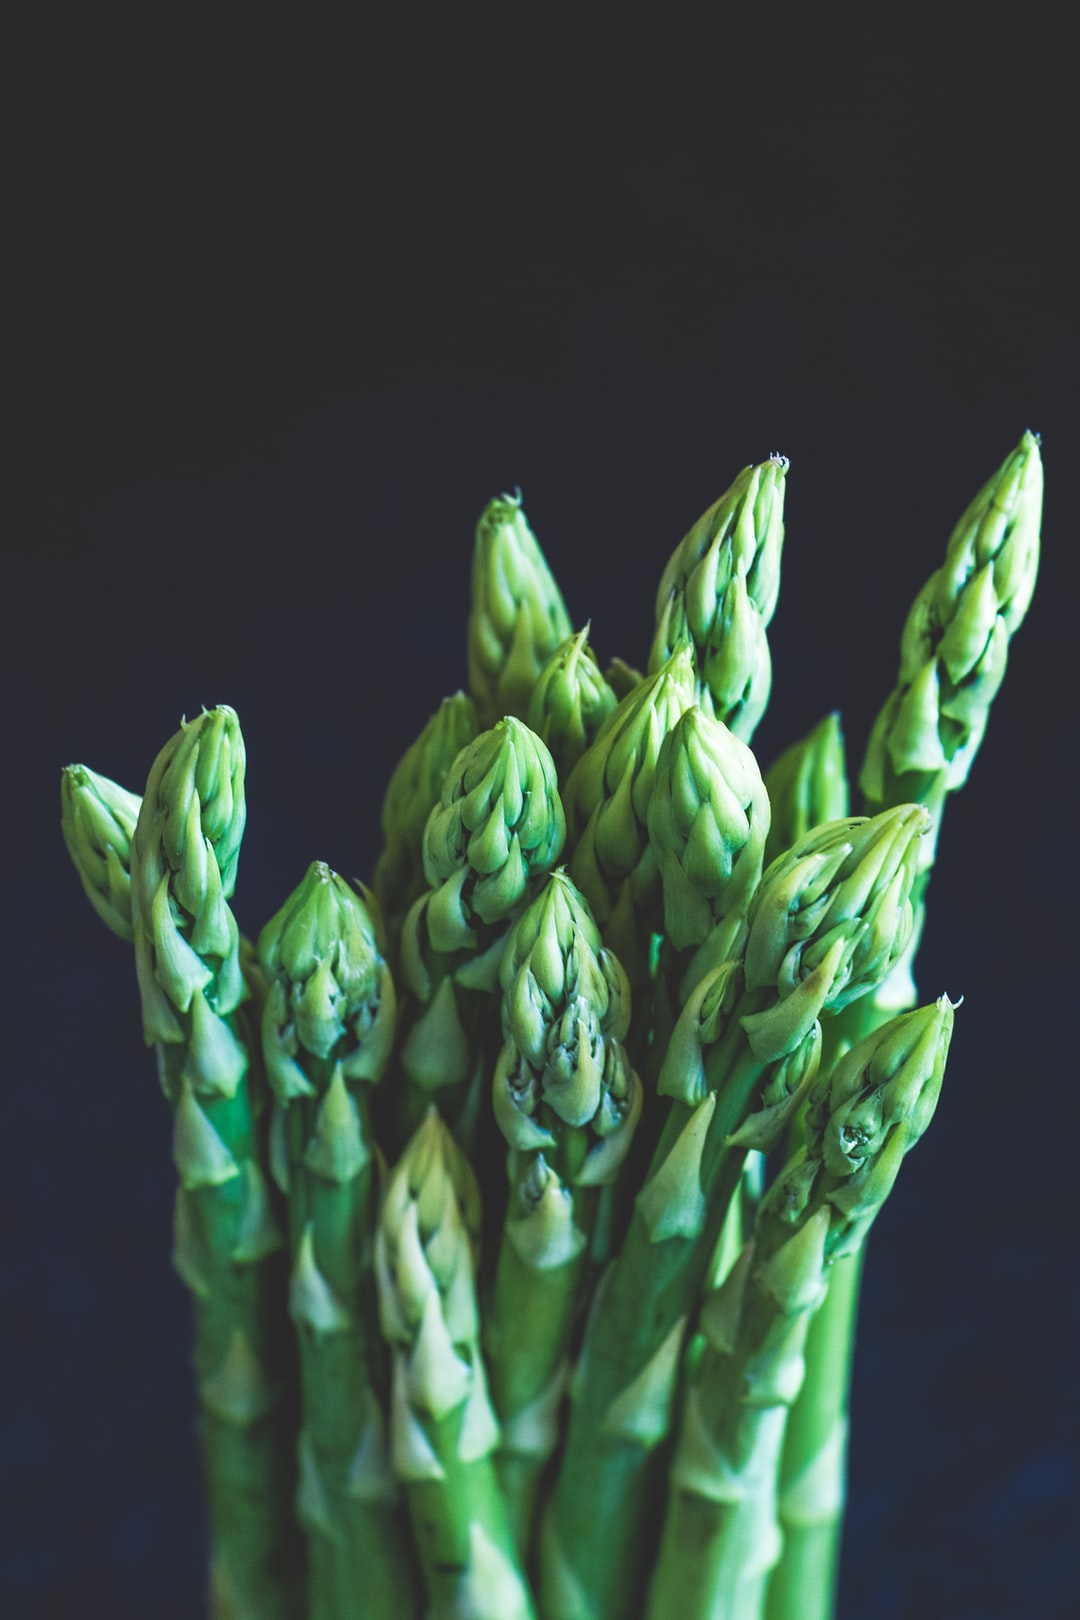 Fresh green bio quality asparagus from the local farmers market. Support your local farmers, without intermediaries and big global food companies. Made with Canon 5d Mark III and analog vintage lens, Leica APO Macro Elmarit-R 2.8 100mm (Year: 1993)